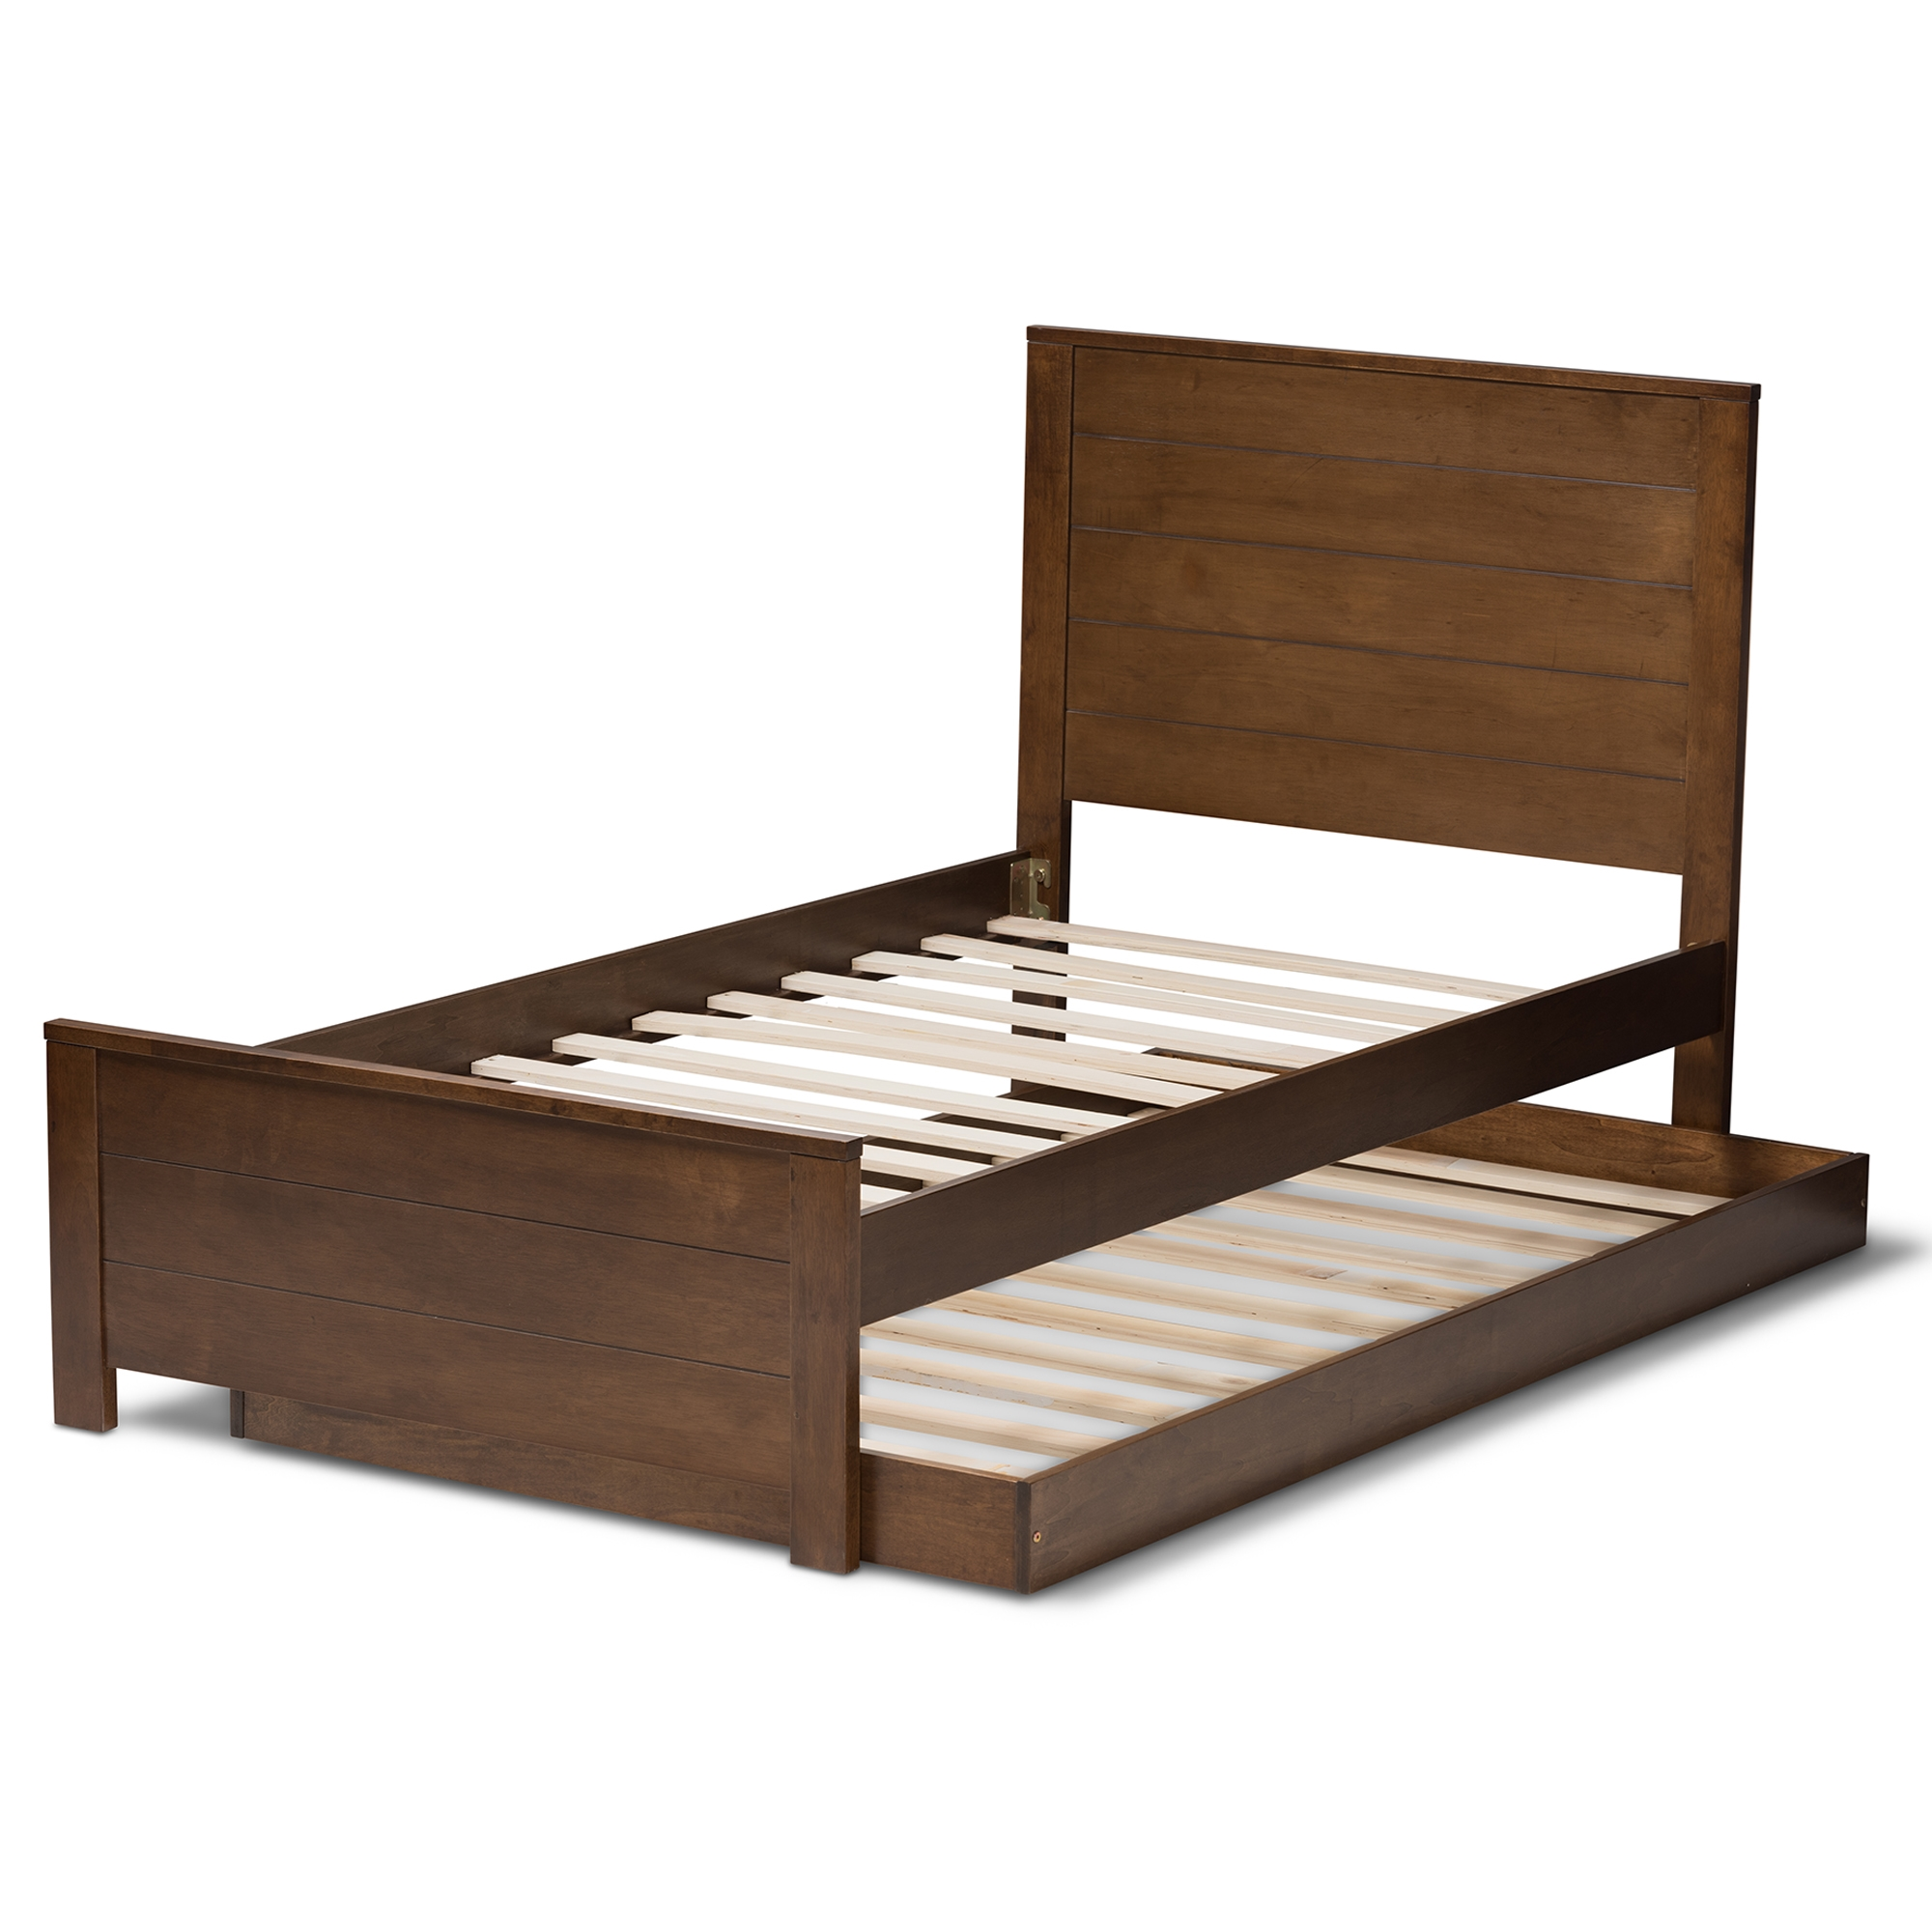 Baxton Studio Catalina Modern Classic Mission Style Brown-Finished Wood Twin Platform Bed with Trundle